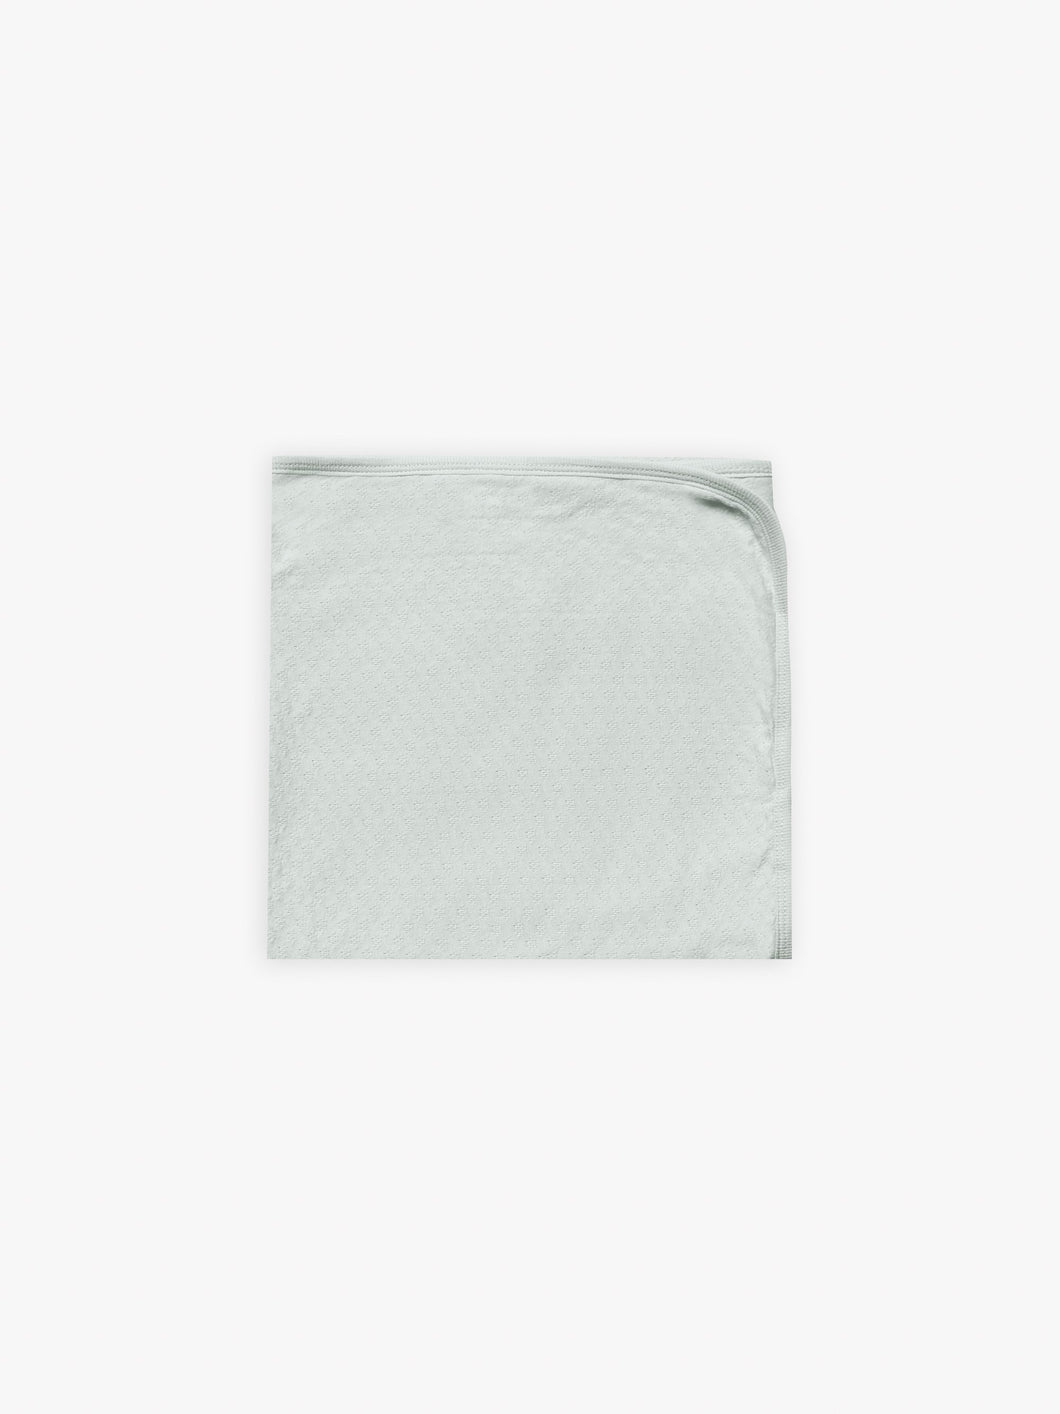 Quincy Mae Pointelle Baby Blanket - Sea Glass